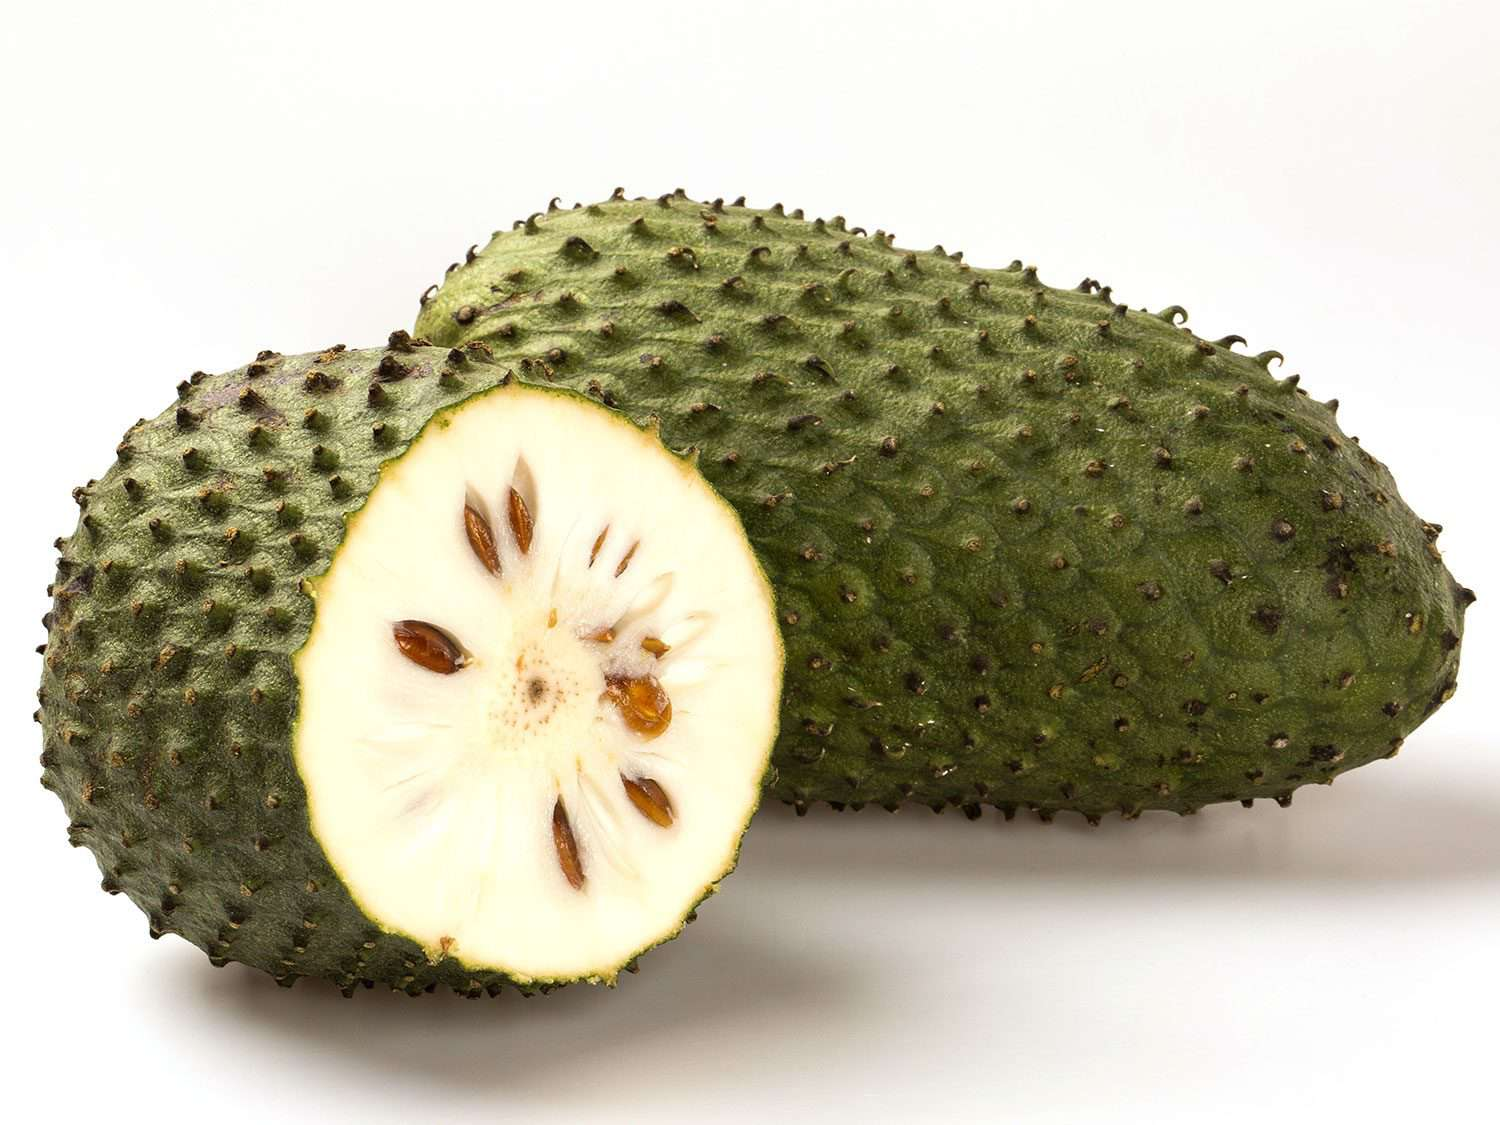 A long whole soursop fruit, with a cut half of another fruit showing the white interior and large dark seeds of the soursop